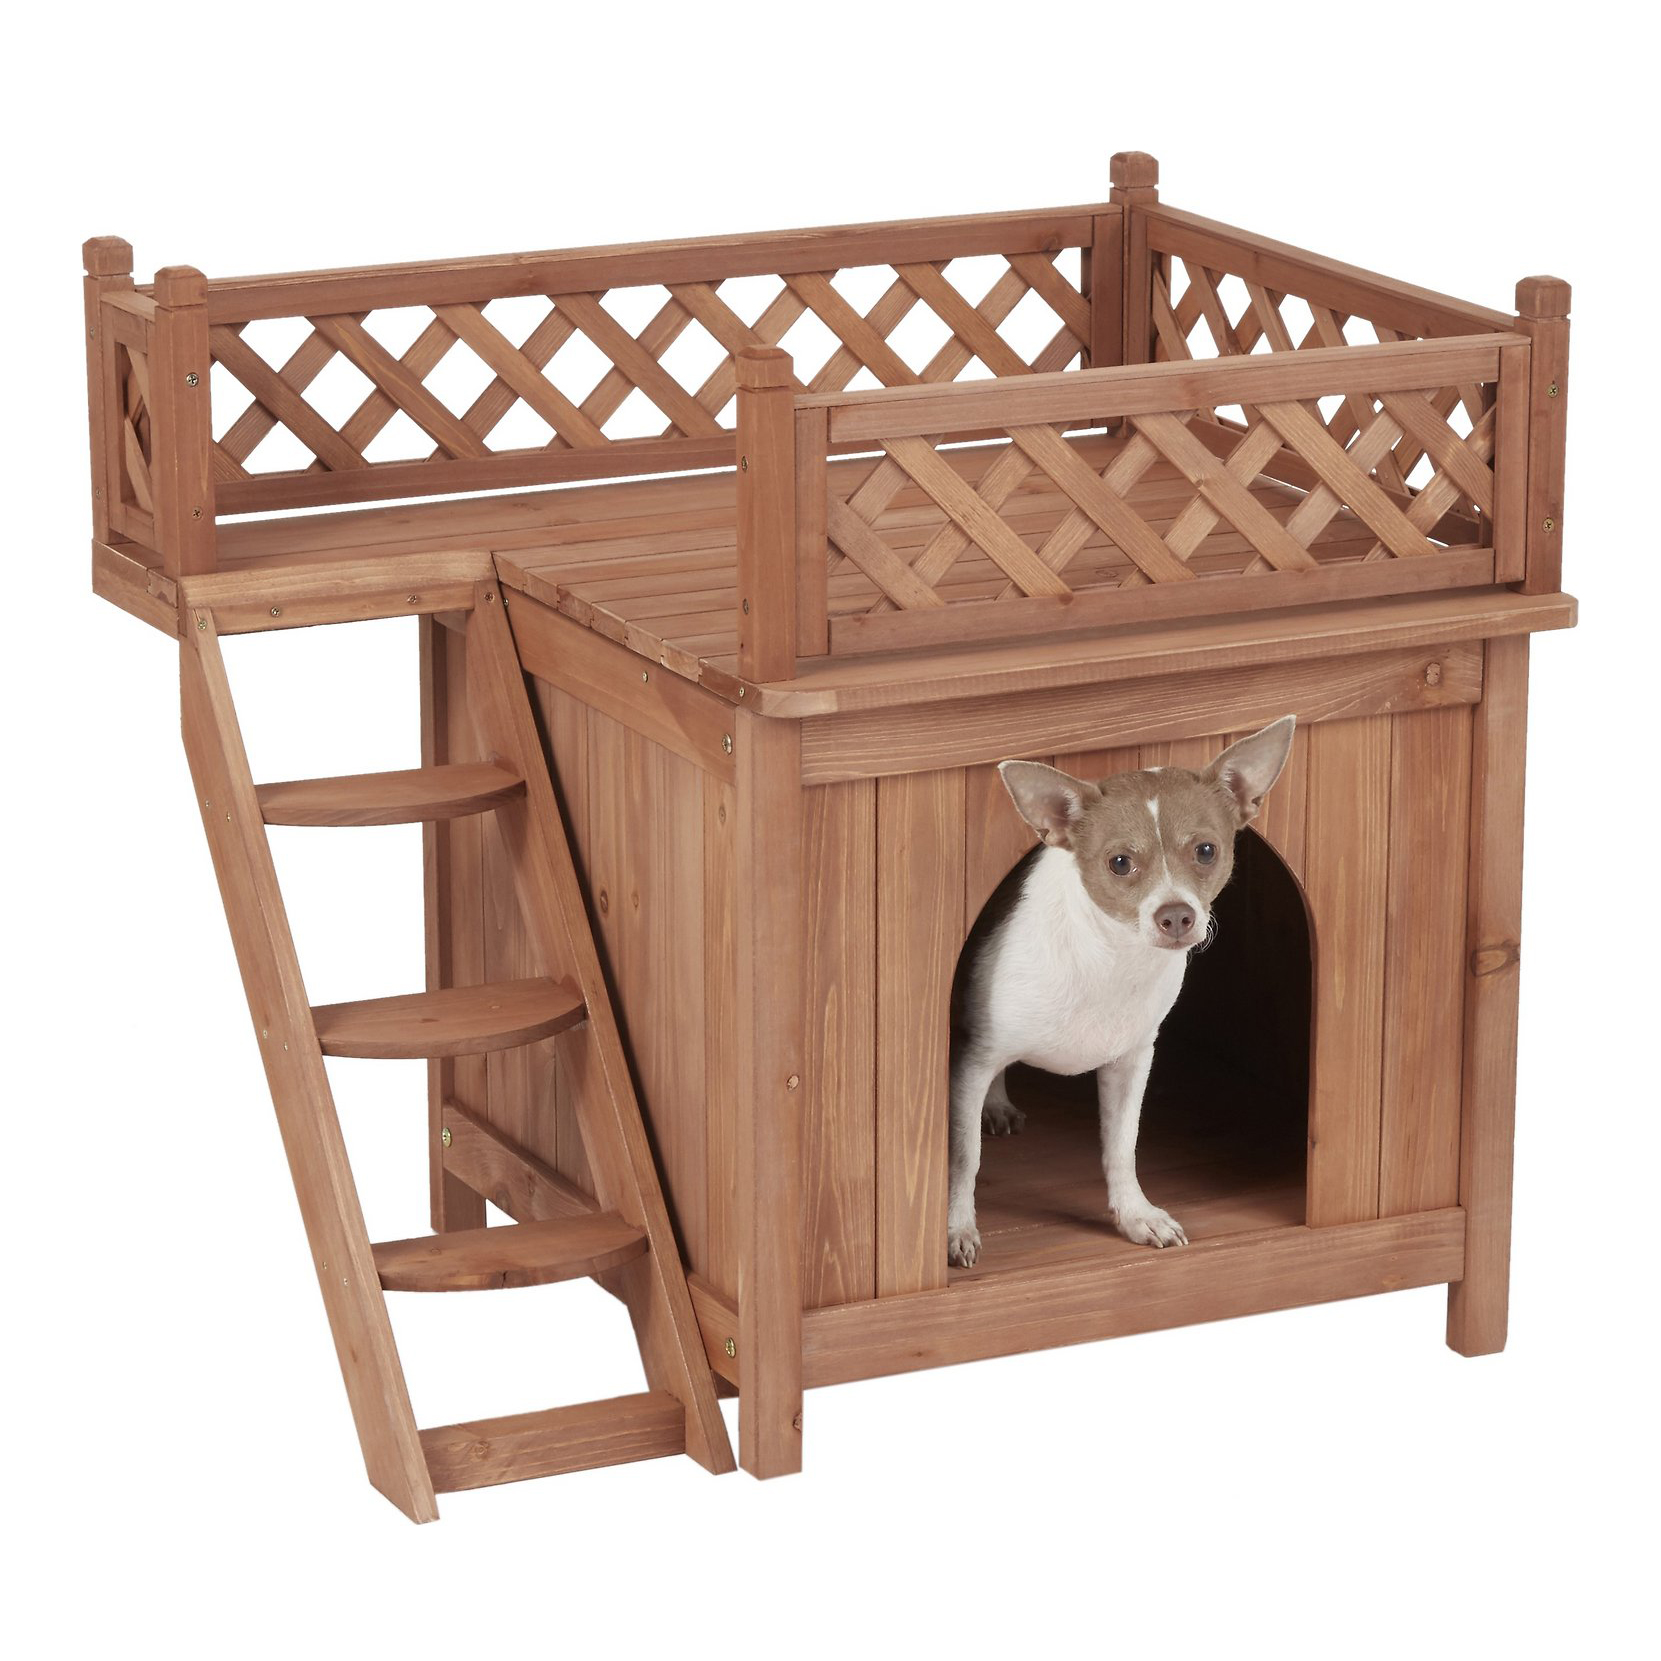 merry-products-room-with-a-view-wood-dog-and-cat-house